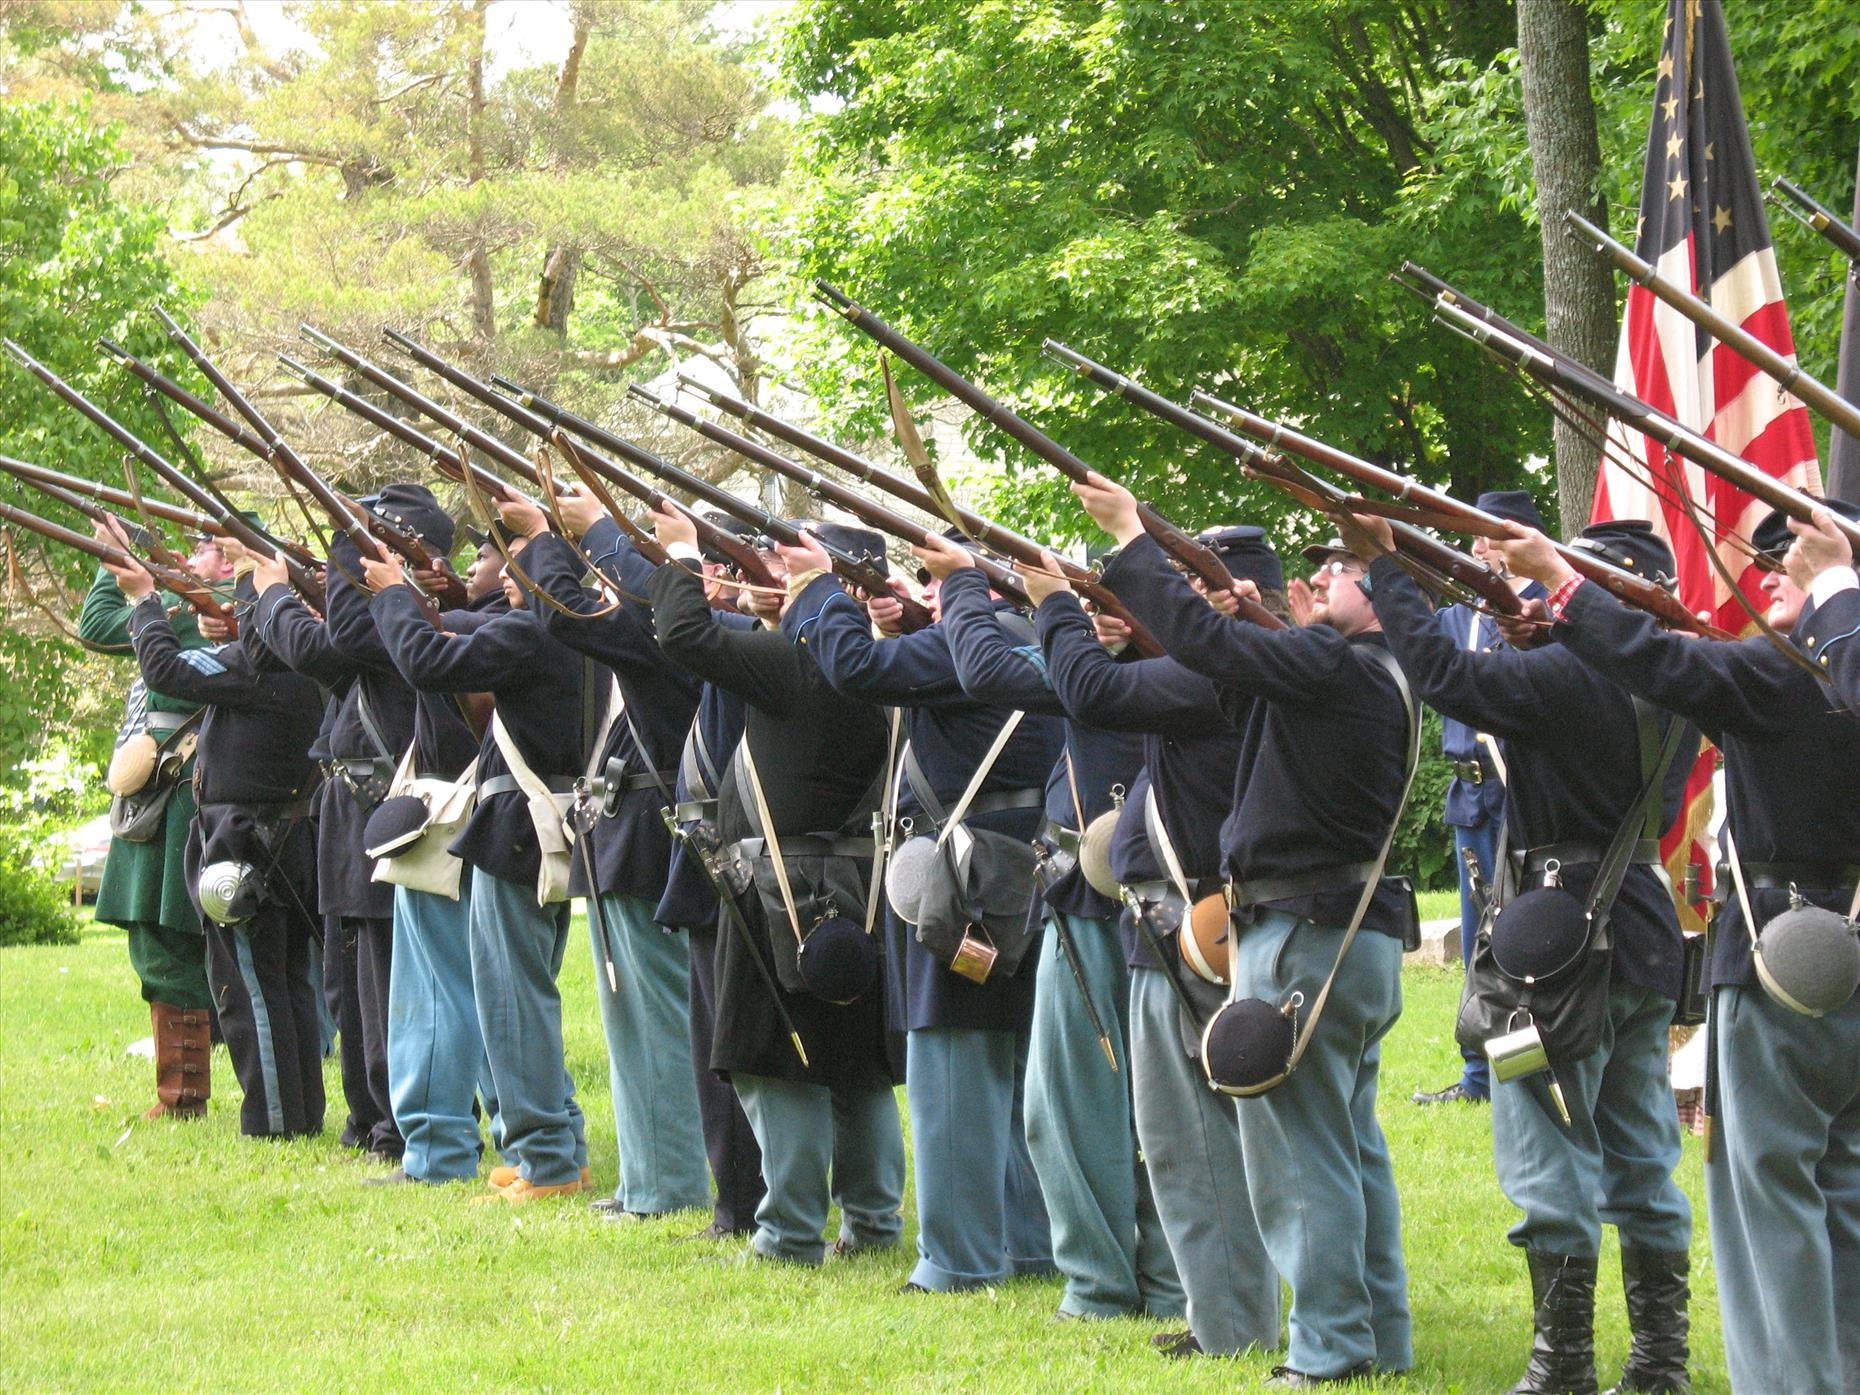 We played hookey Sunday to go see the Civil War reenactment at the Gerritt Smith estate--so much cool history in CNY!